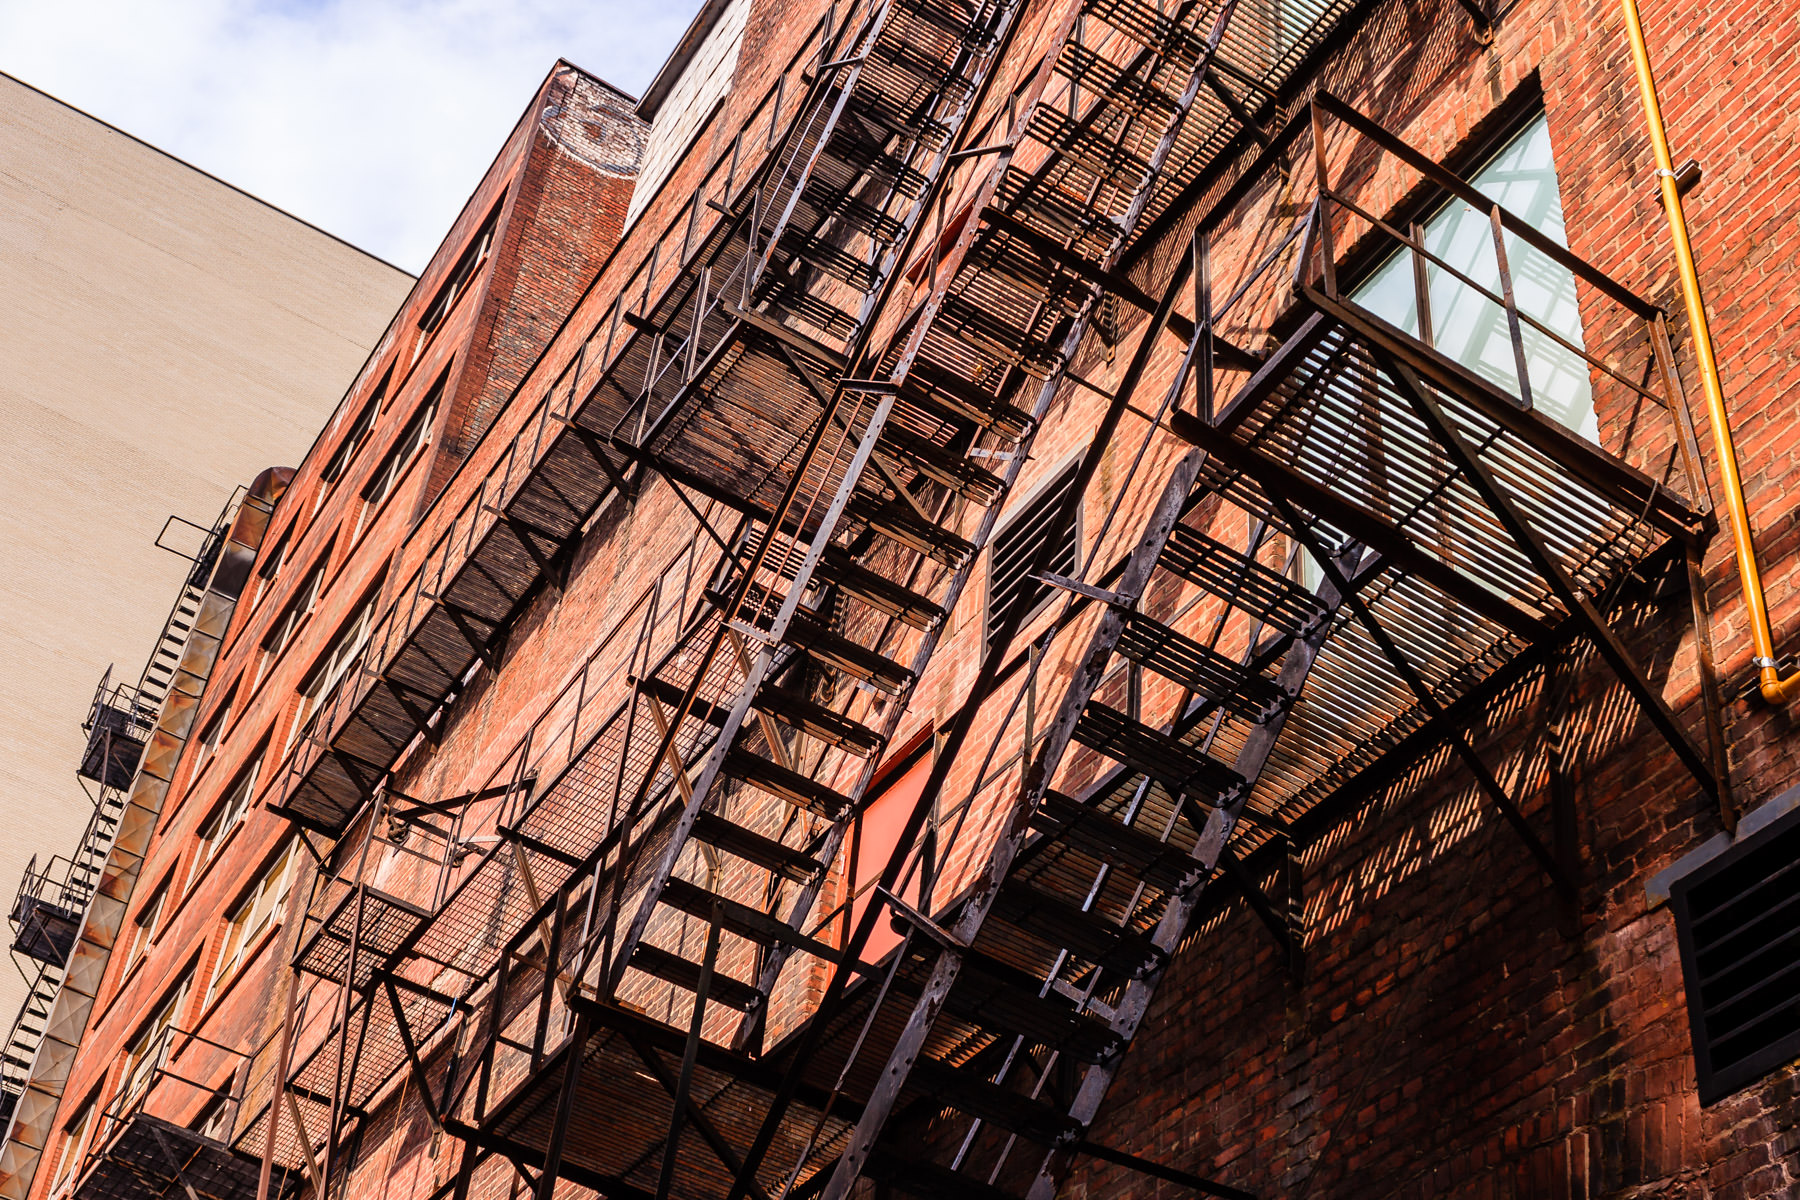 A fire escape climbs up the side of a building in Centre-ville Montréal.